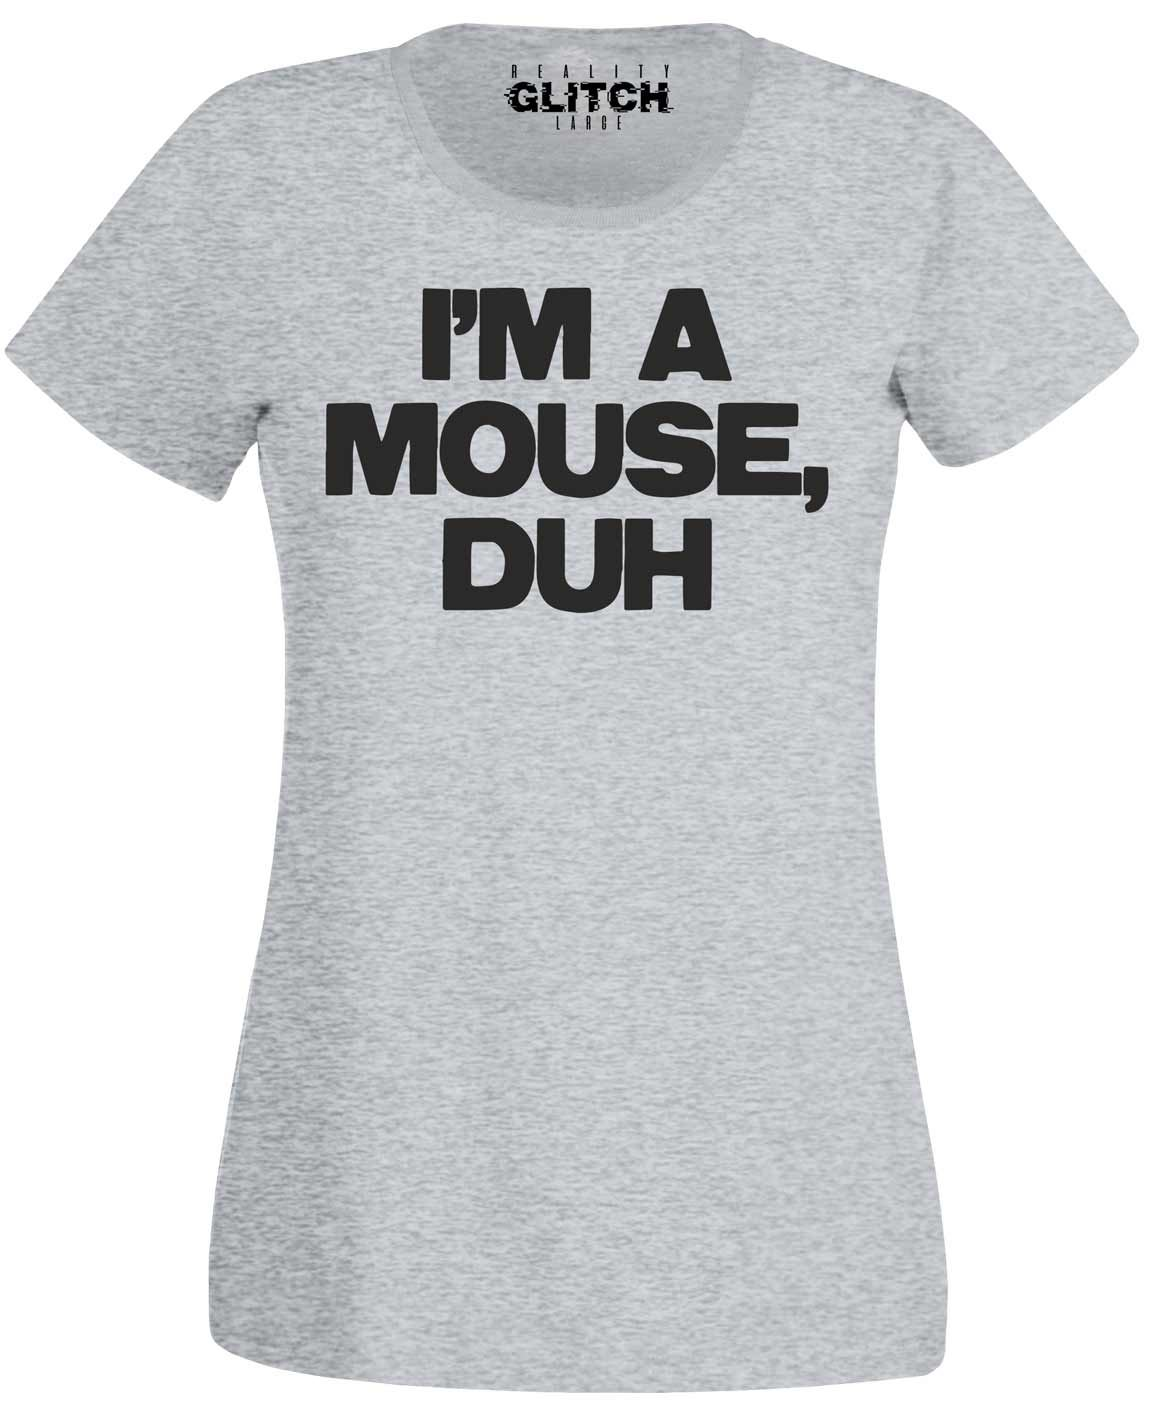 I/'m A Mouse Duh T-shirt Womens Ladyfit Mean Girls Fancy Dress Halloween Costume